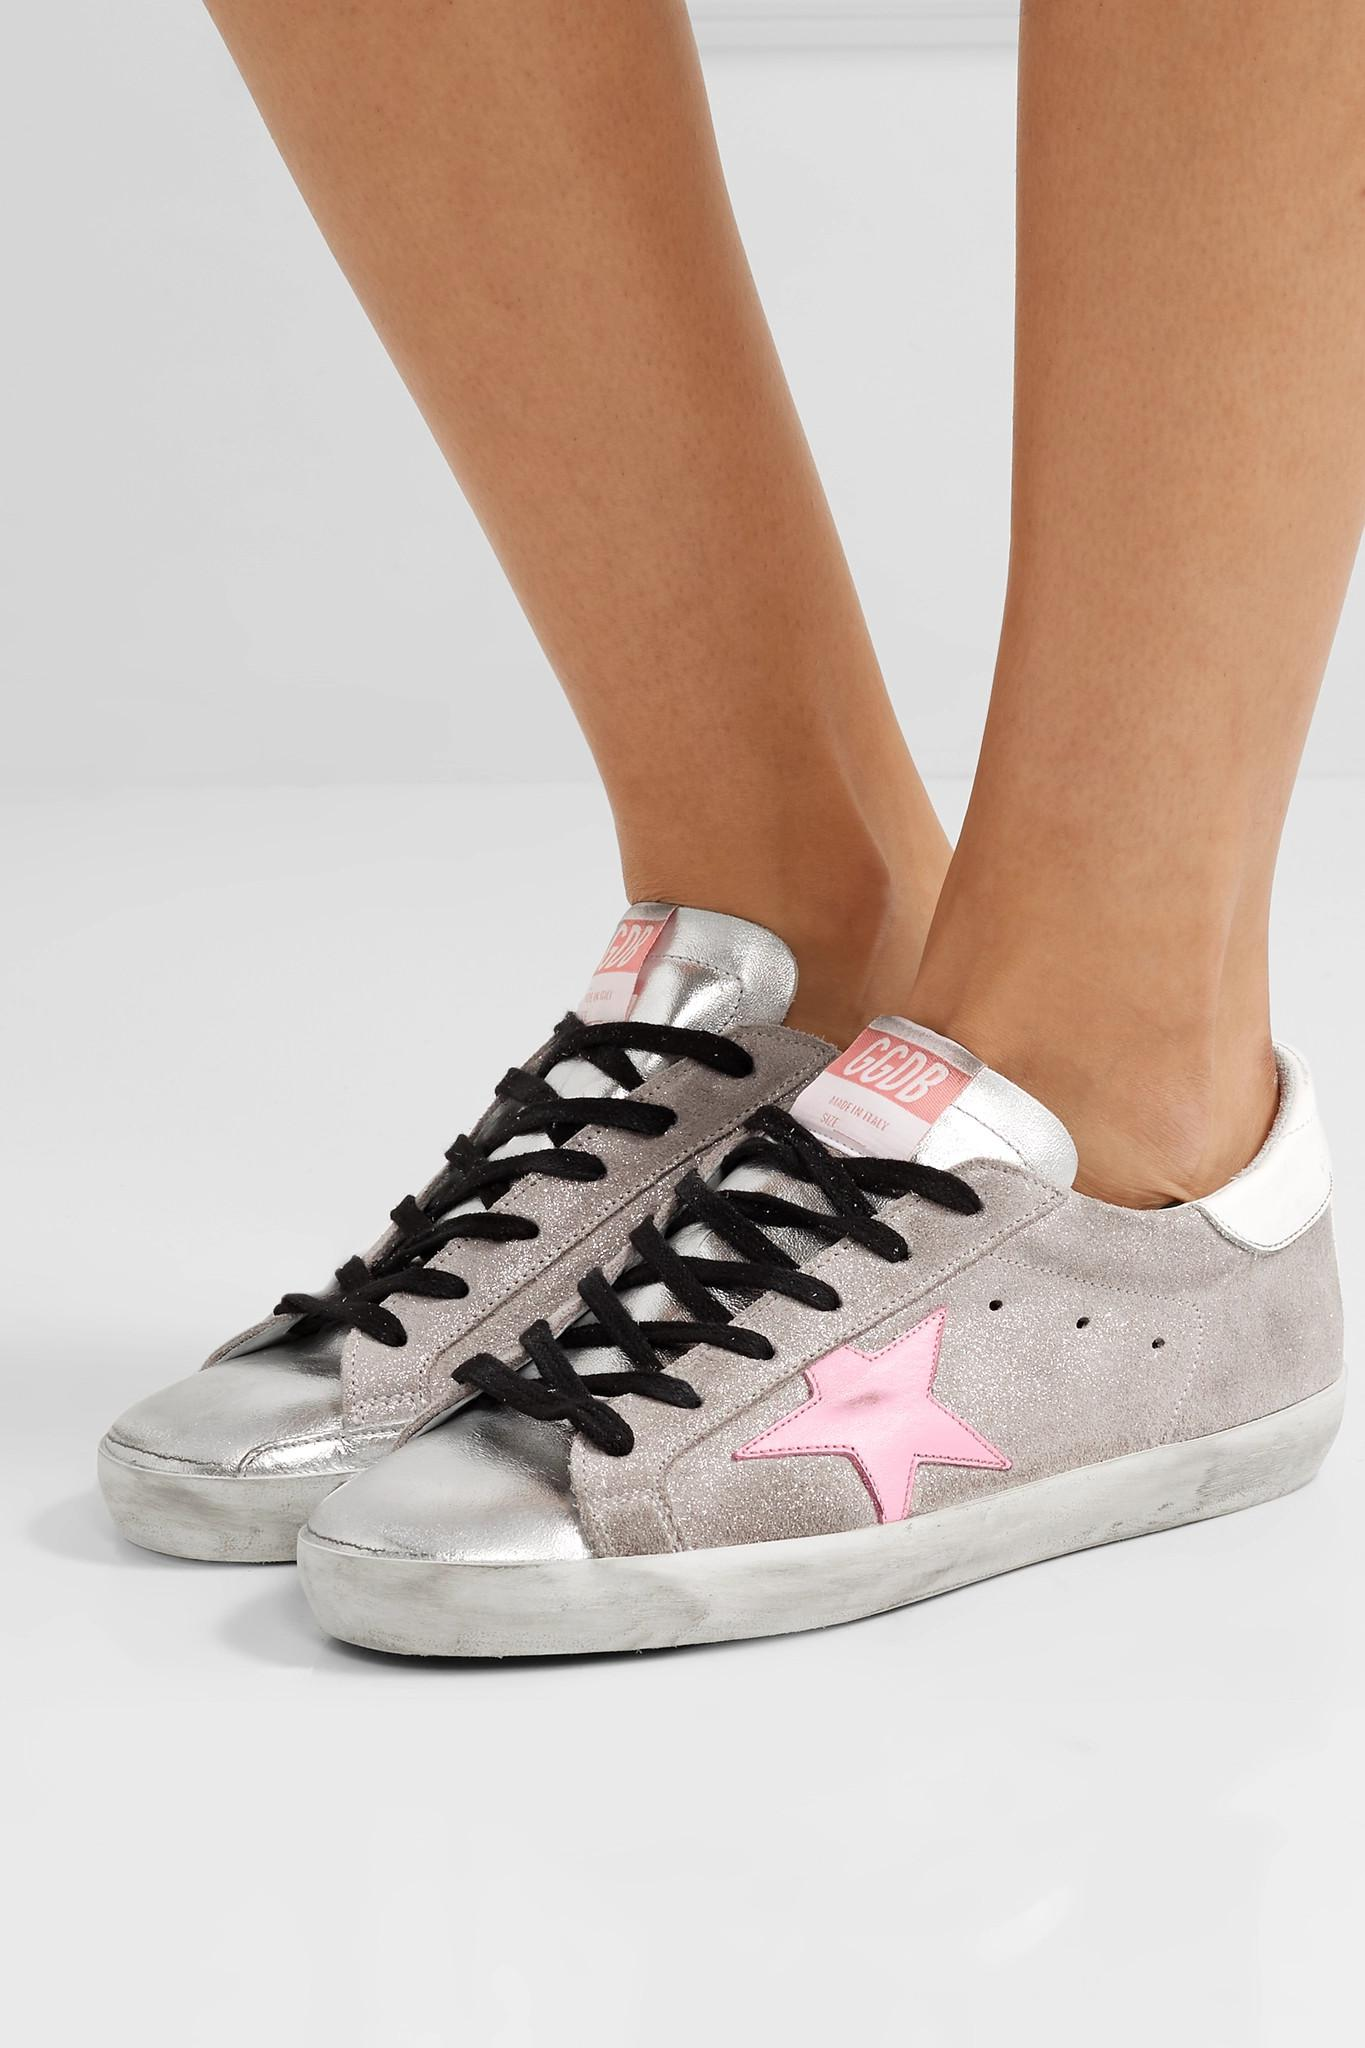 76623b71e273 Lyst - Golden Goose Deluxe Brand Superstar Distressed Glittered ...